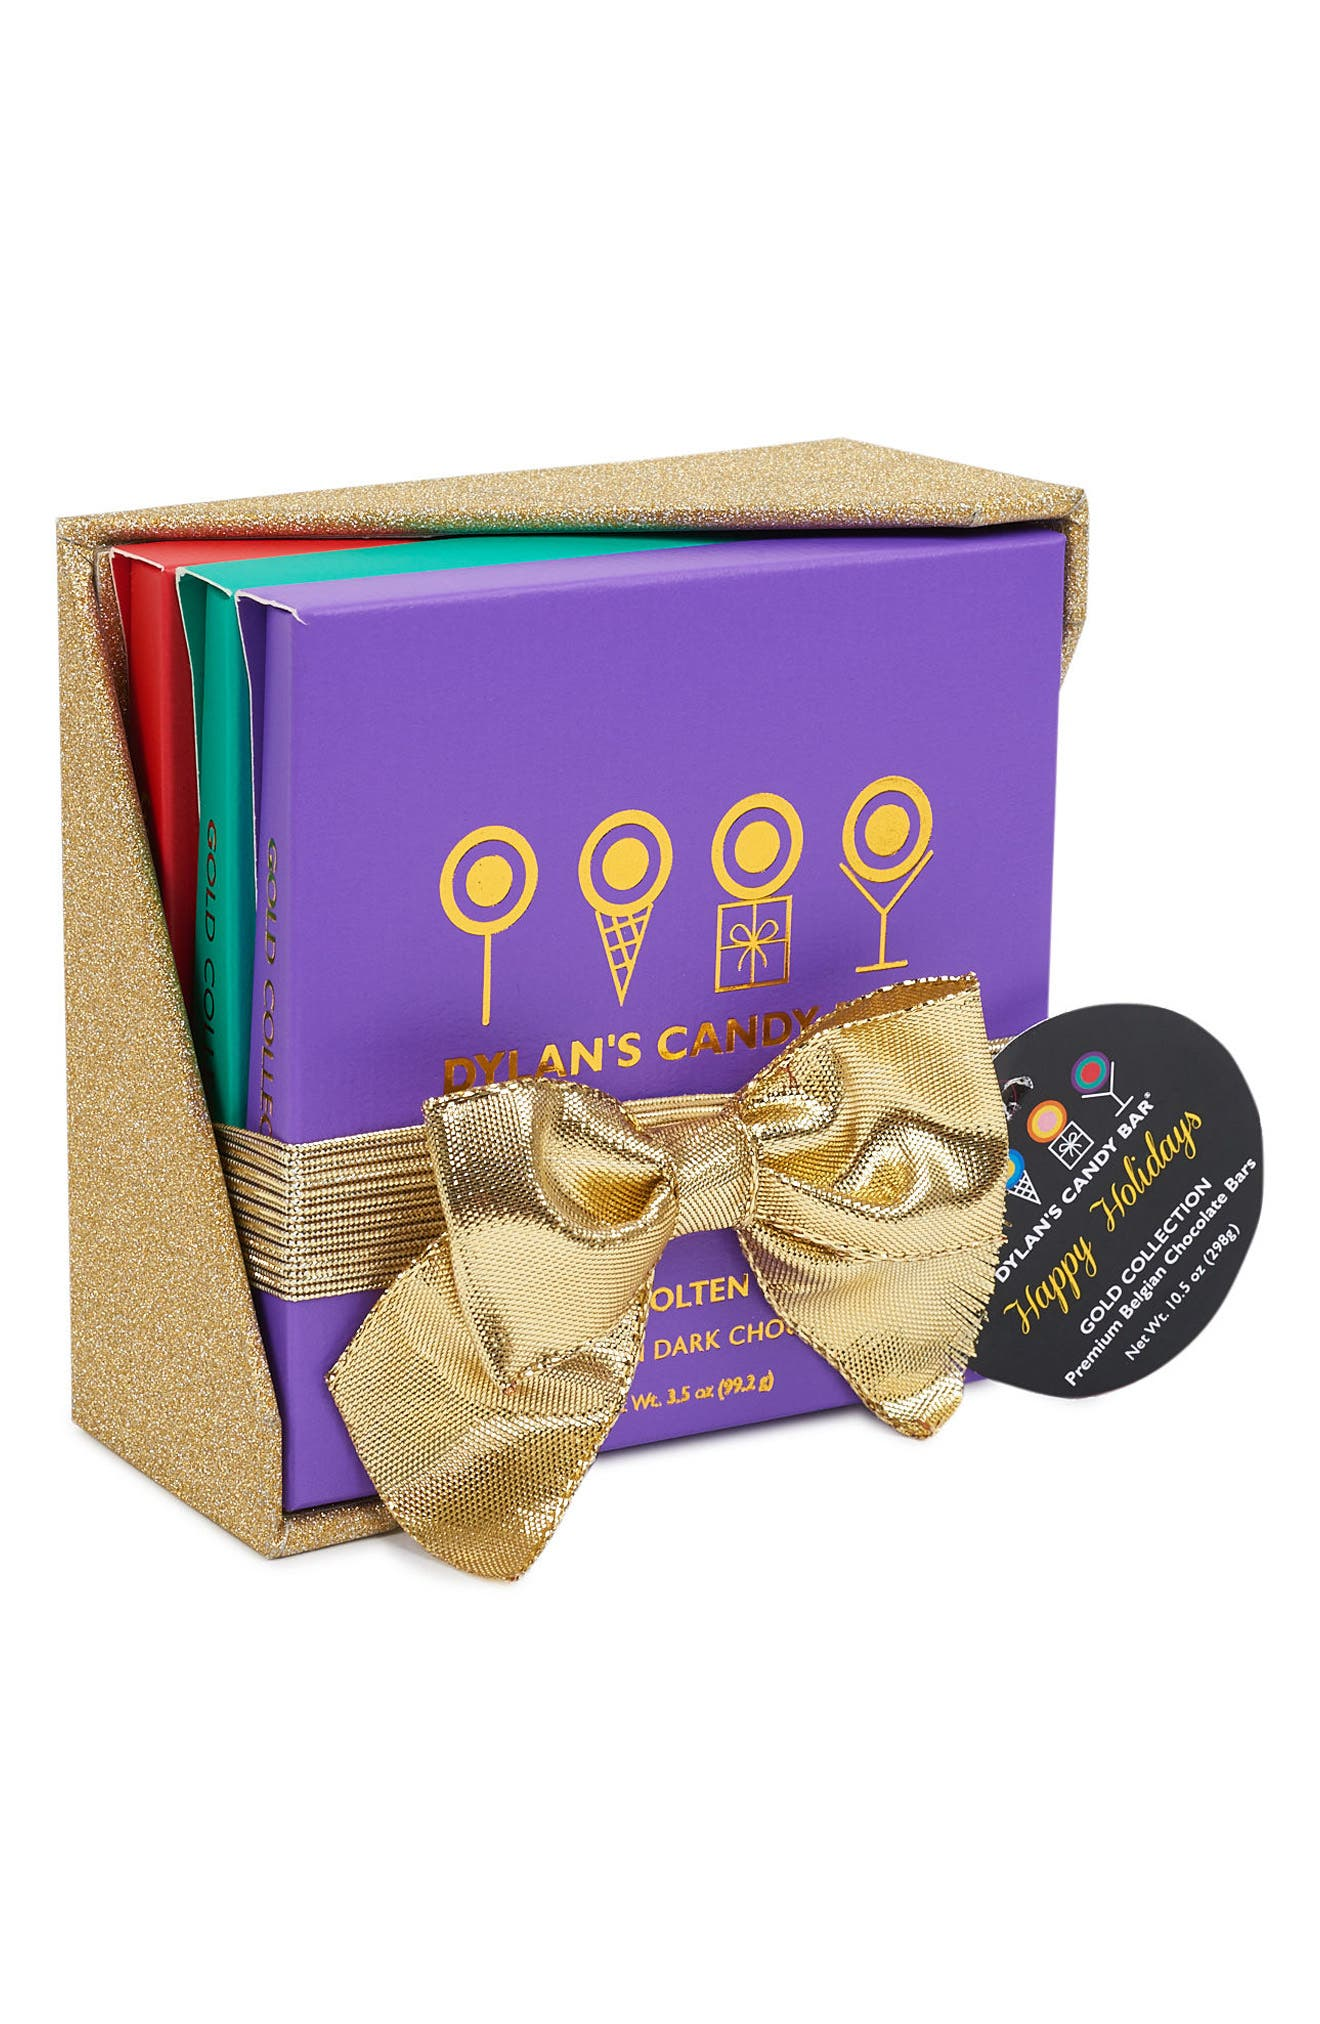 Dylan's Candy Bar Gold Collection Signature Flavors Gift Box